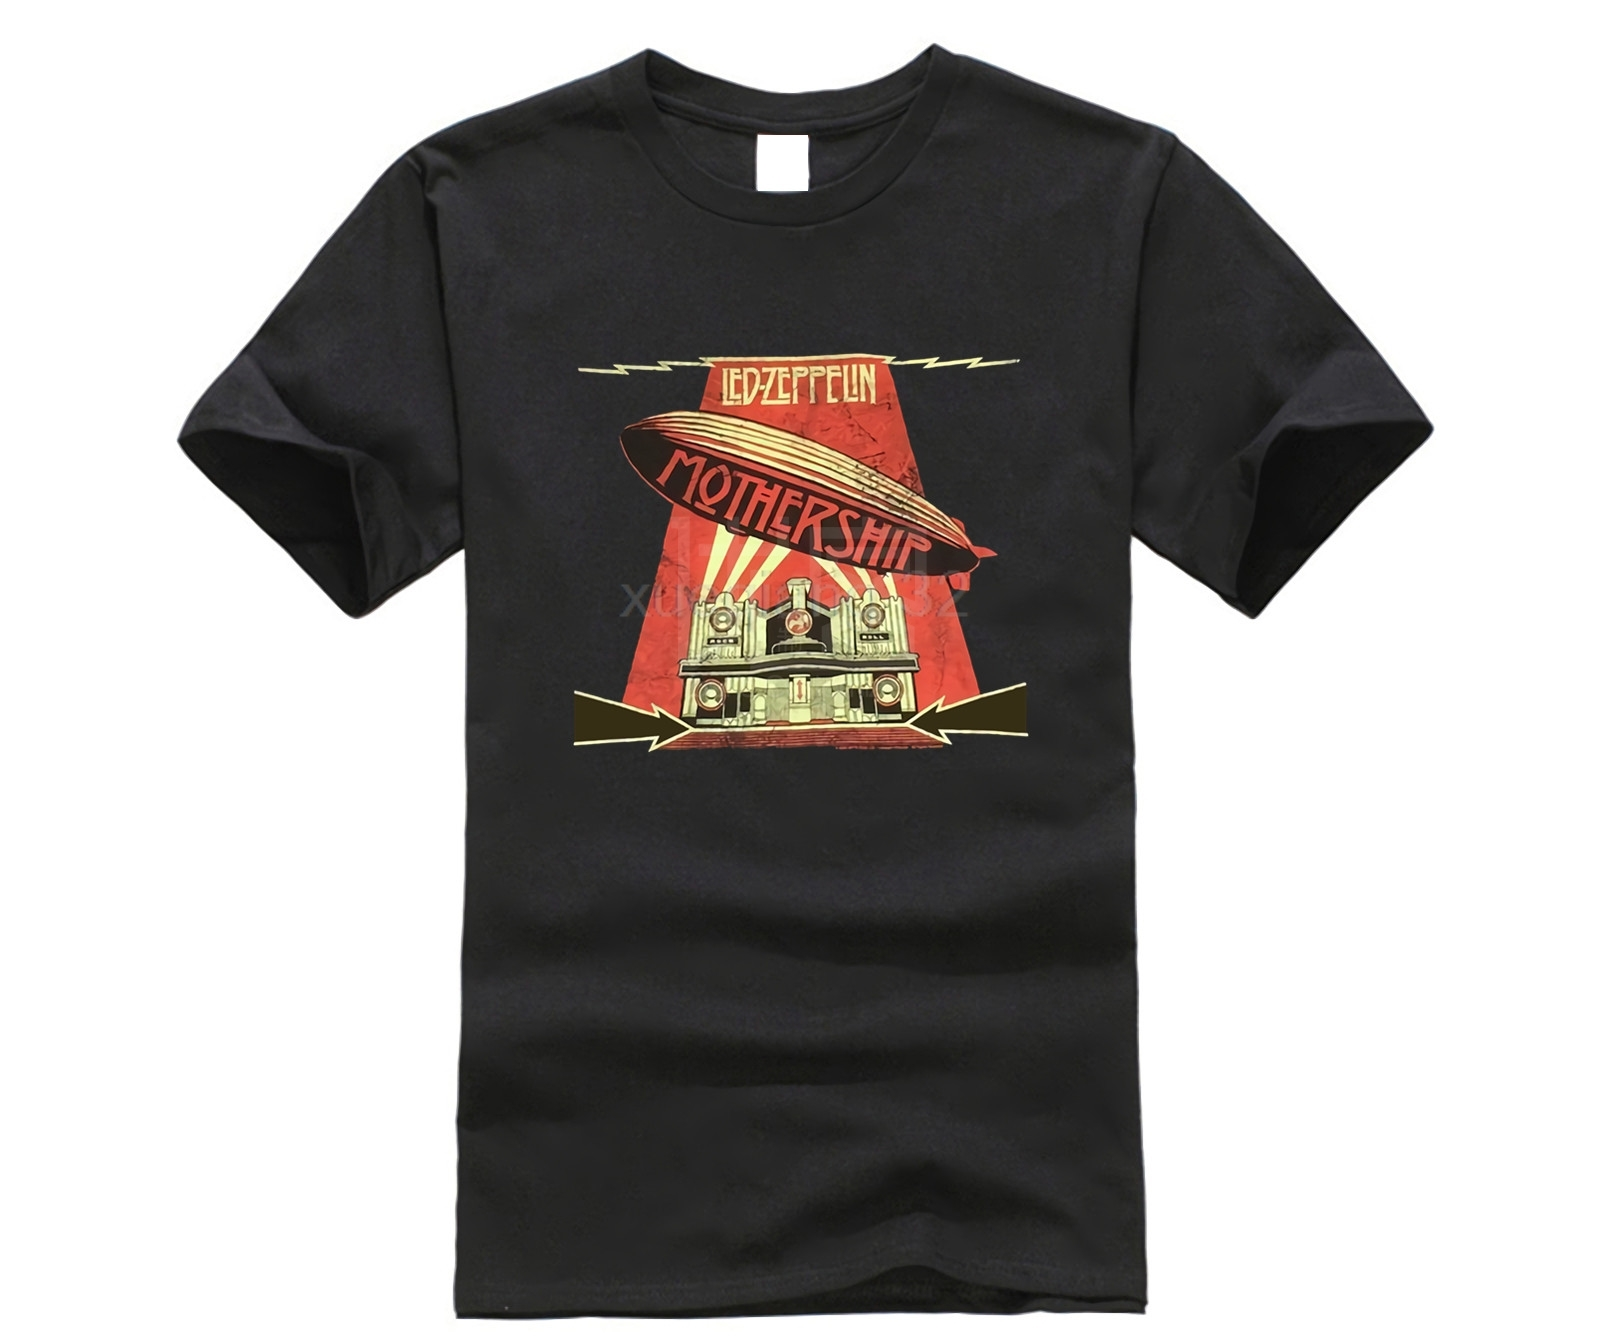 Led-Zeppelin-Mothership-Distressed-Image-Black-T-Shirt-New-Official-Soft-T-Shirt-Casual-Short-Sleeve T Shirt